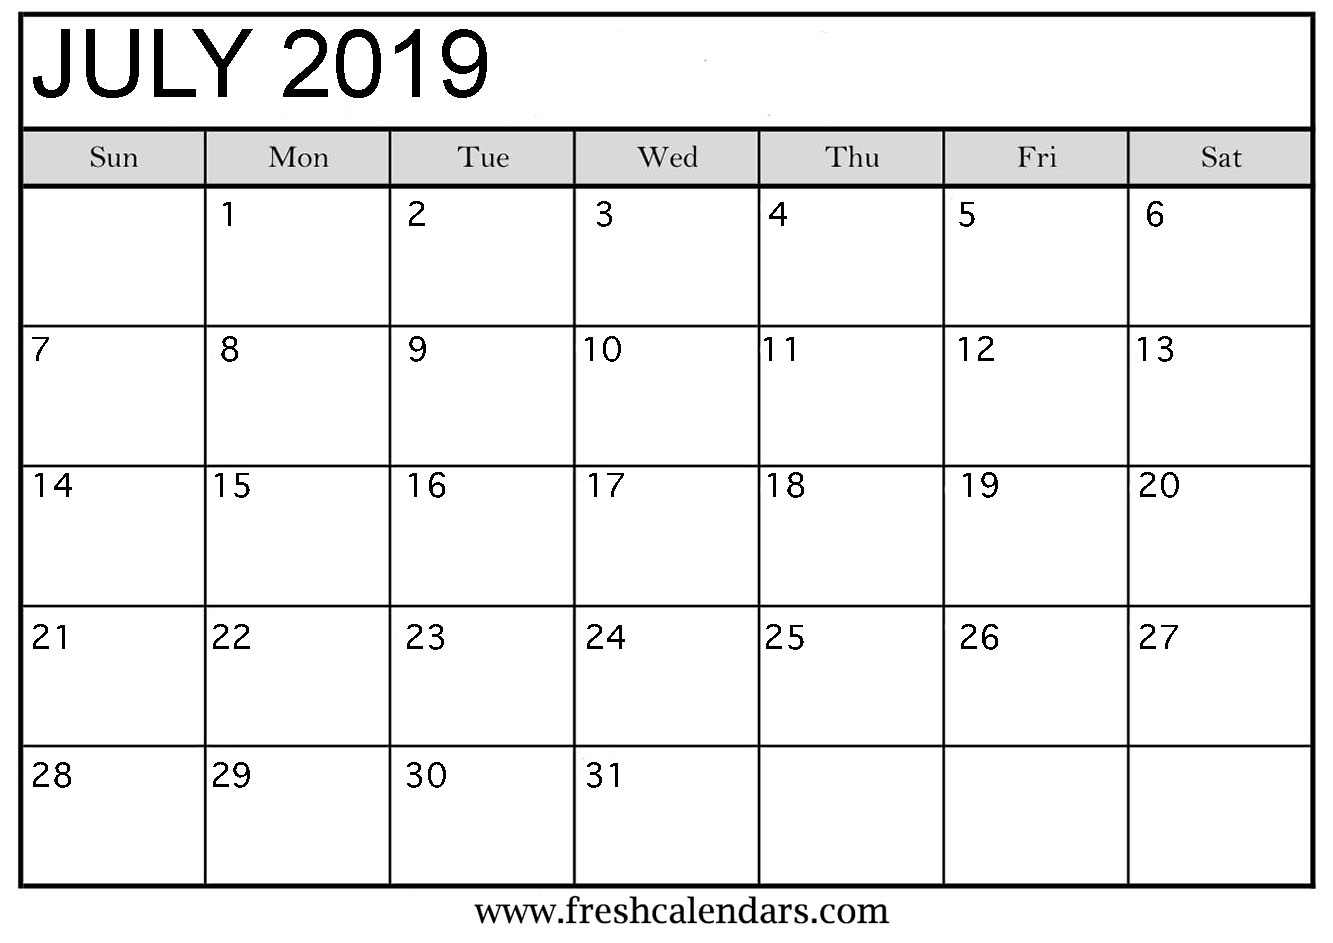 Calendar Template 2019 : July printable calendars fresh